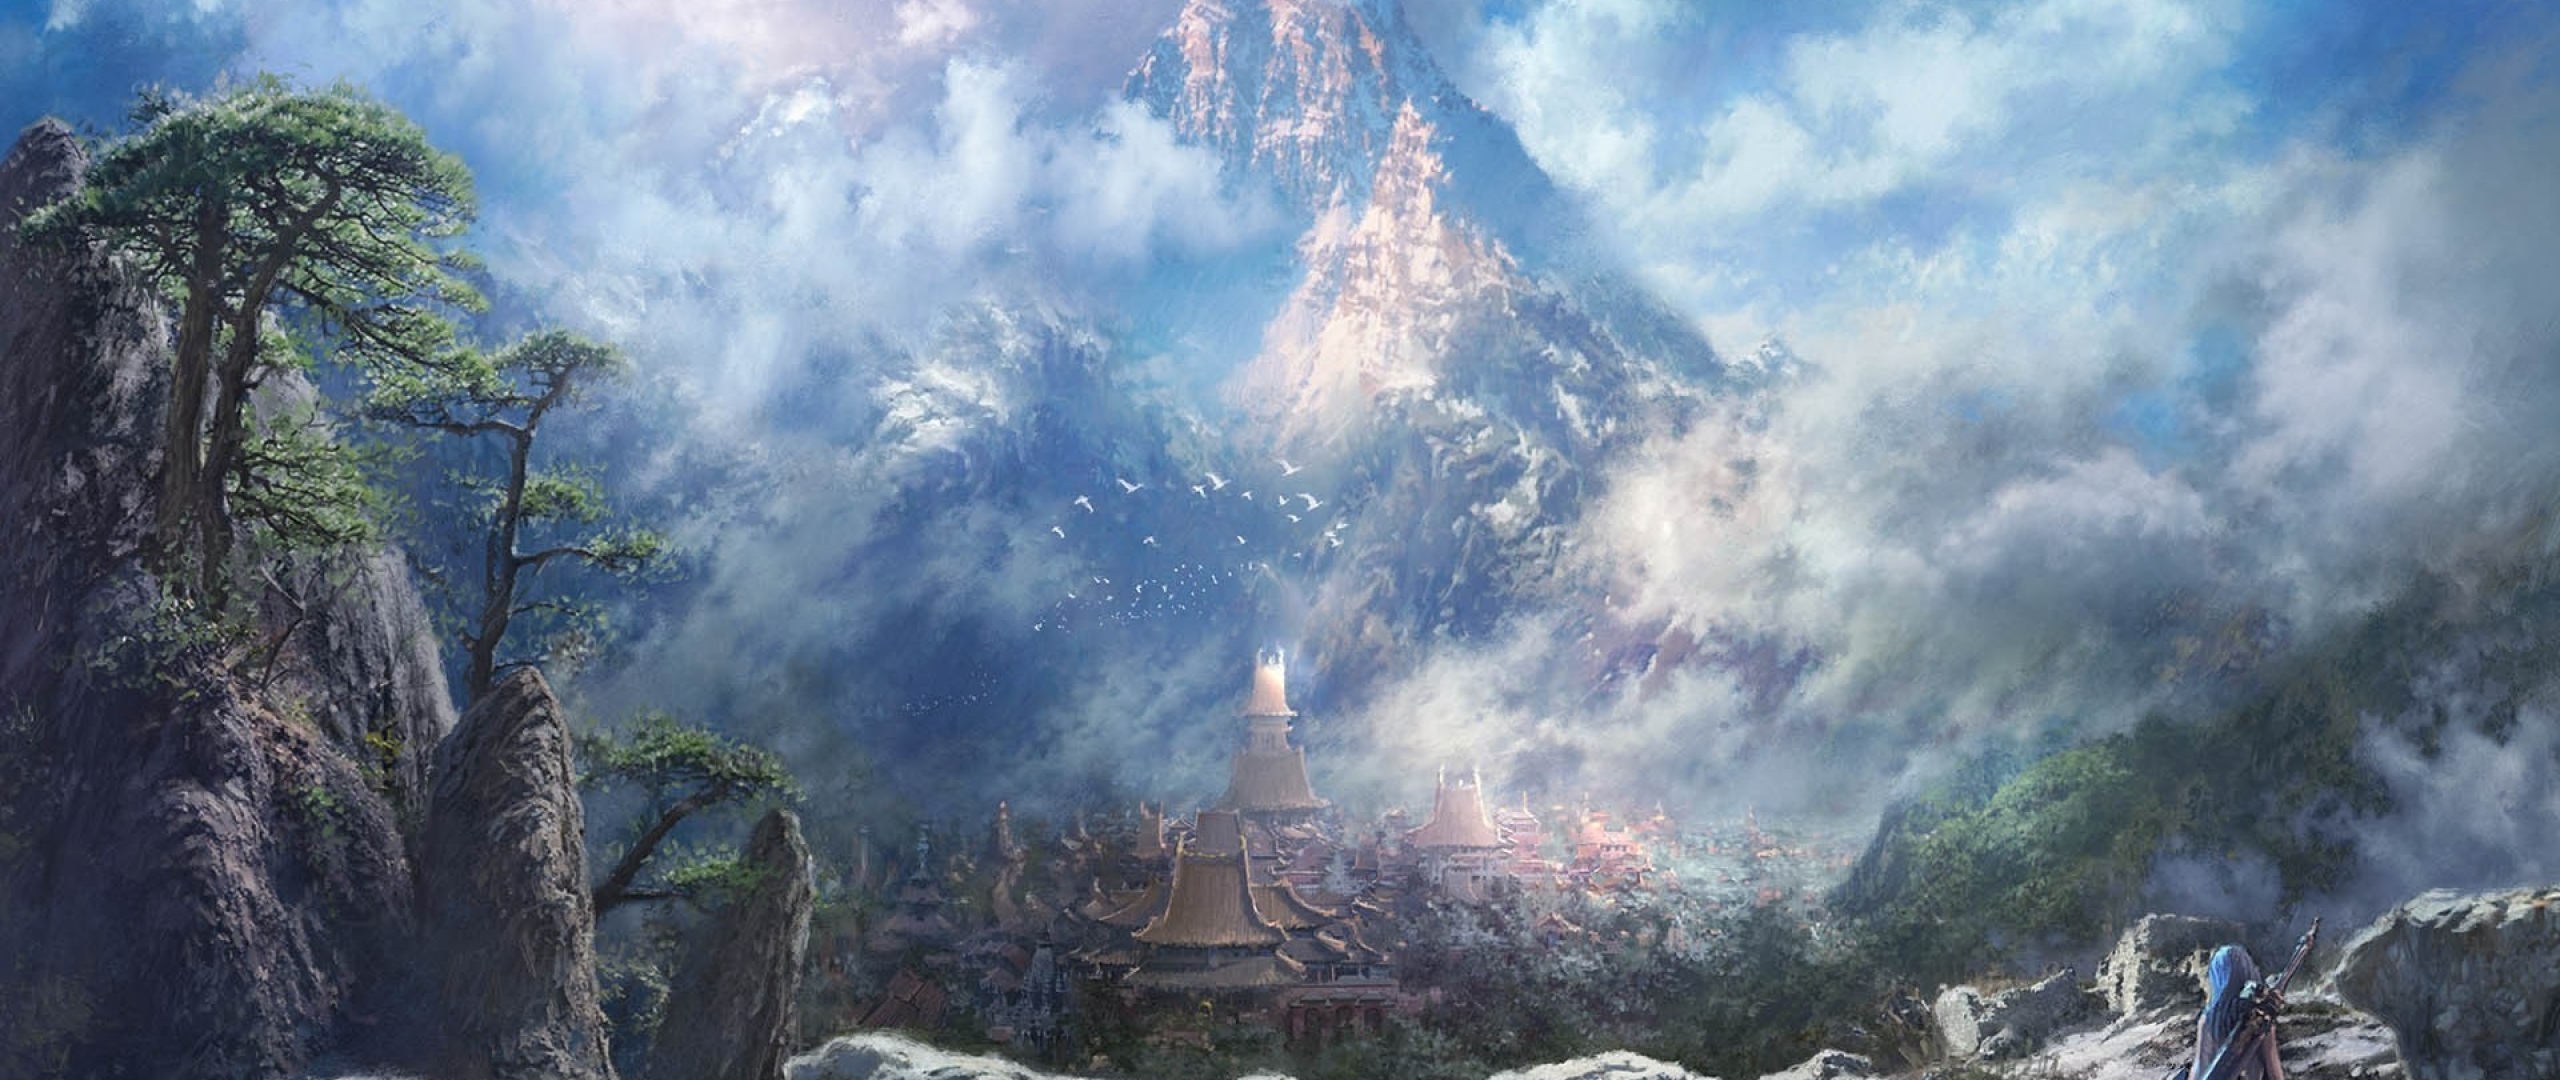 2560x1080 Blade And Soul Mountains Rock 2560x1080 Resolution